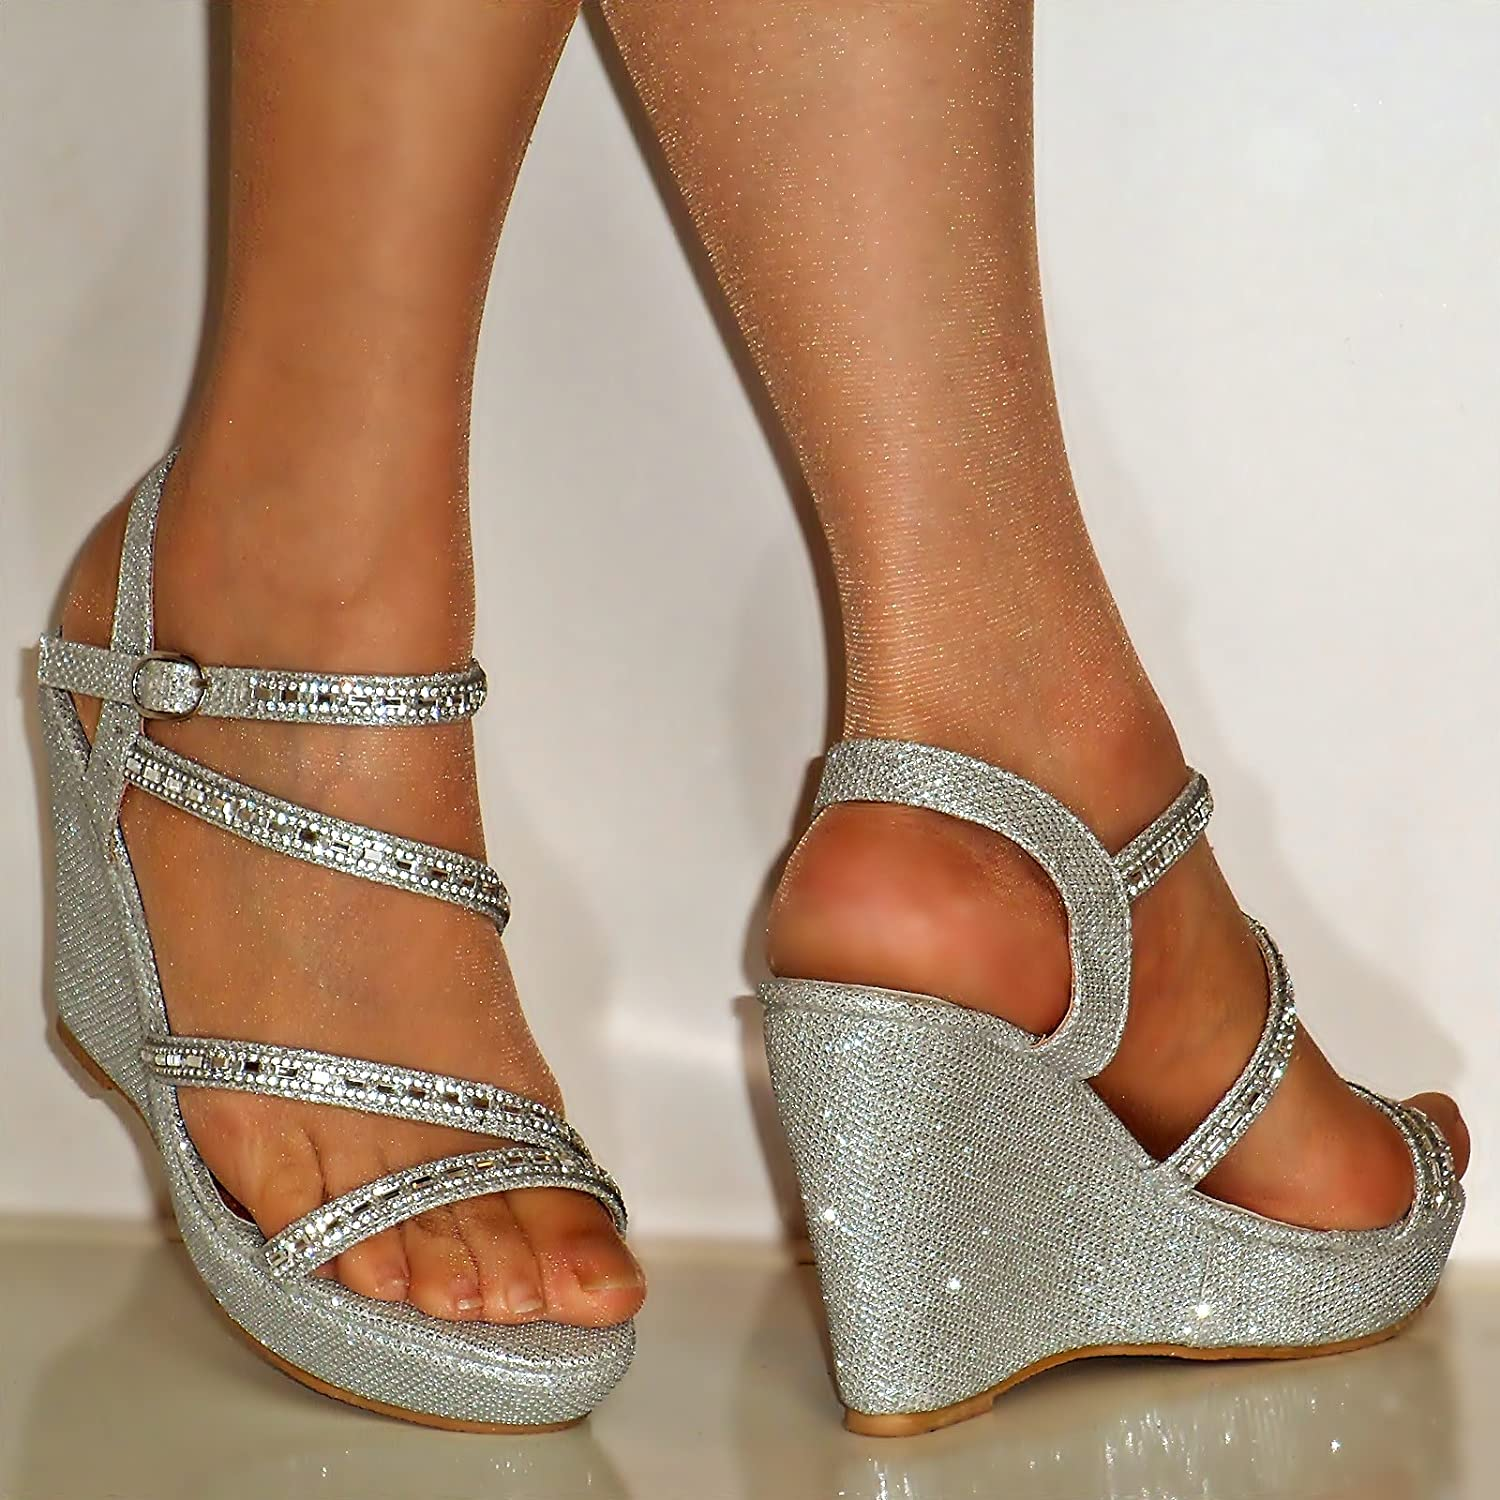 Perfect ROCK ON STYLES NEW DIAMANTE SILVER ANKLE STRAP PLATFORM WEDGE MID HIGH HEEL  PARTY PROM EVENING BRIDAL SANDALS SHOES SIZE: Amazon.co.uk: Shoes U0026 Bags